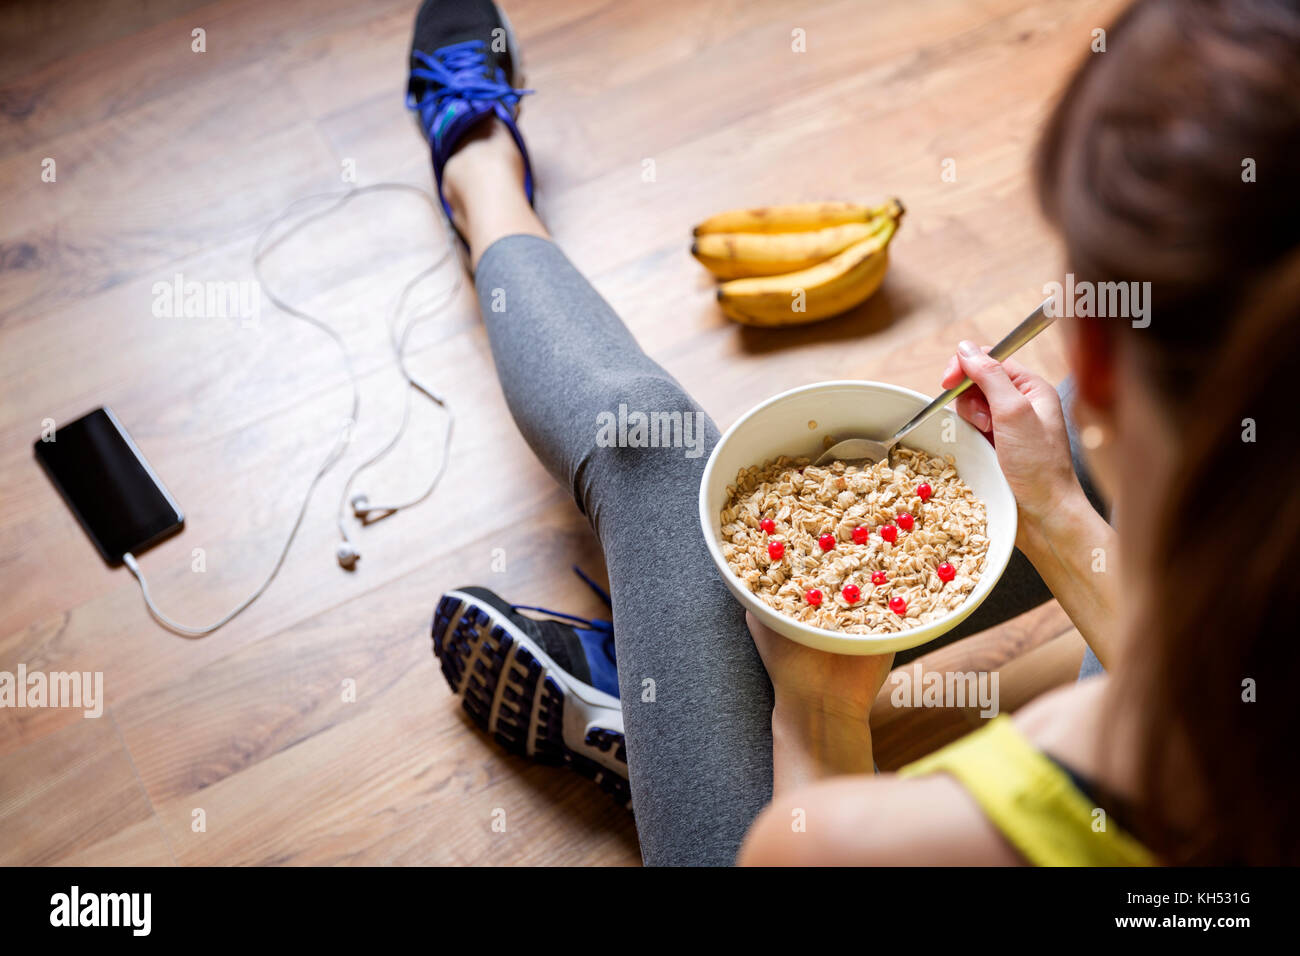 Young girl eating a oatmeal with berries after a workout . Fitness and healthy lifestyle concept. - Stock Image